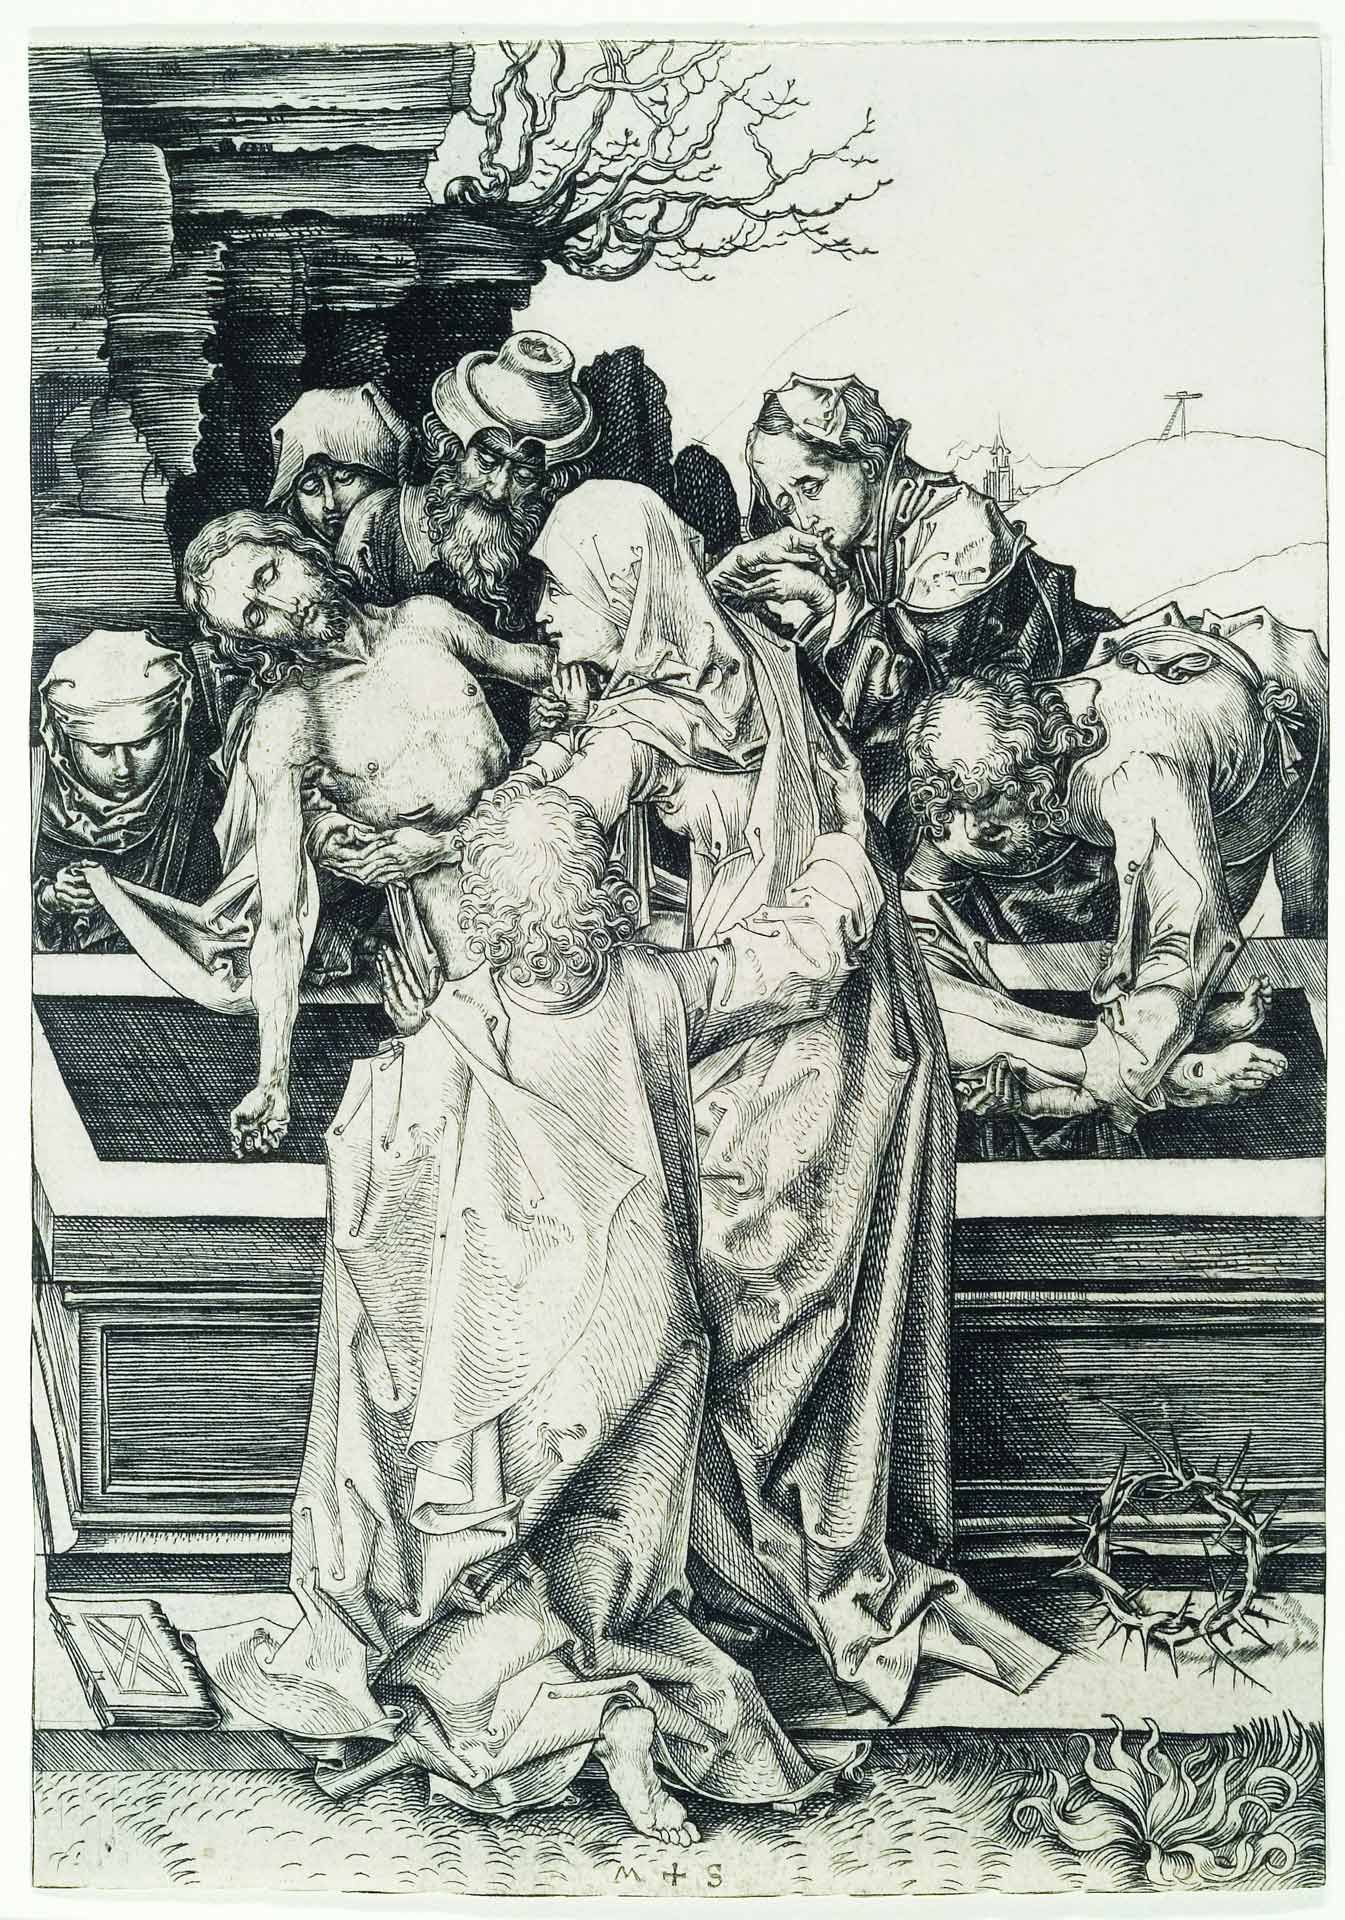 Martin Schongauer (1440/50-1491), The Entombment, about 1480, engraving, only state. MMFA, purchase, anonymous fund